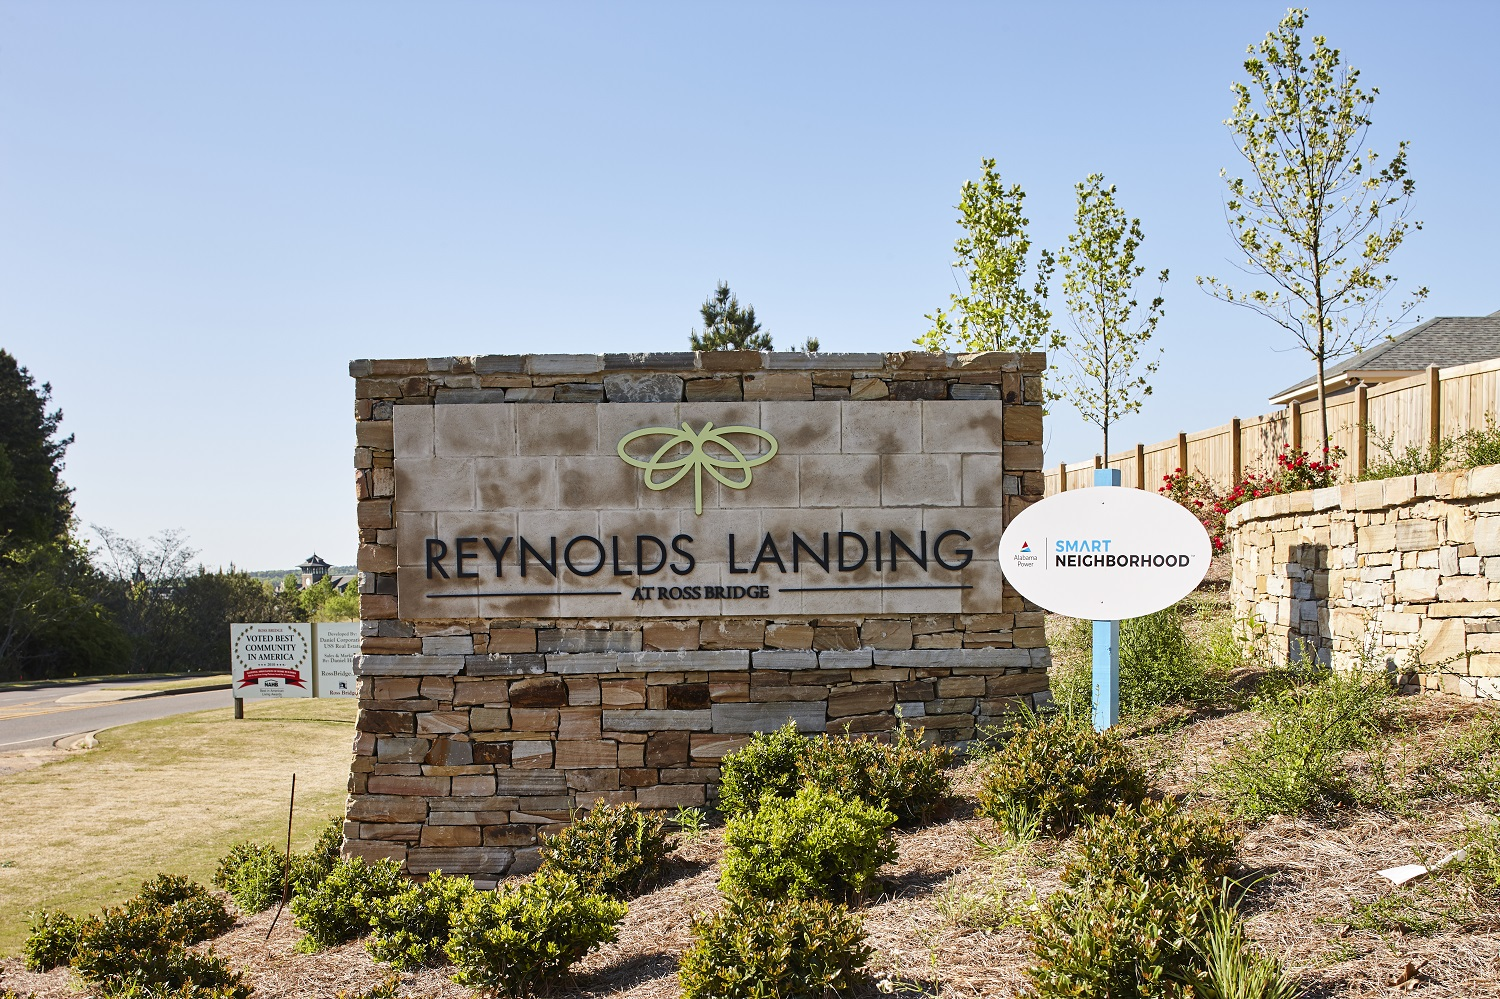 Reynolds Landing in Hoover is a Smart Neighborhood by Alabama Power. (file)